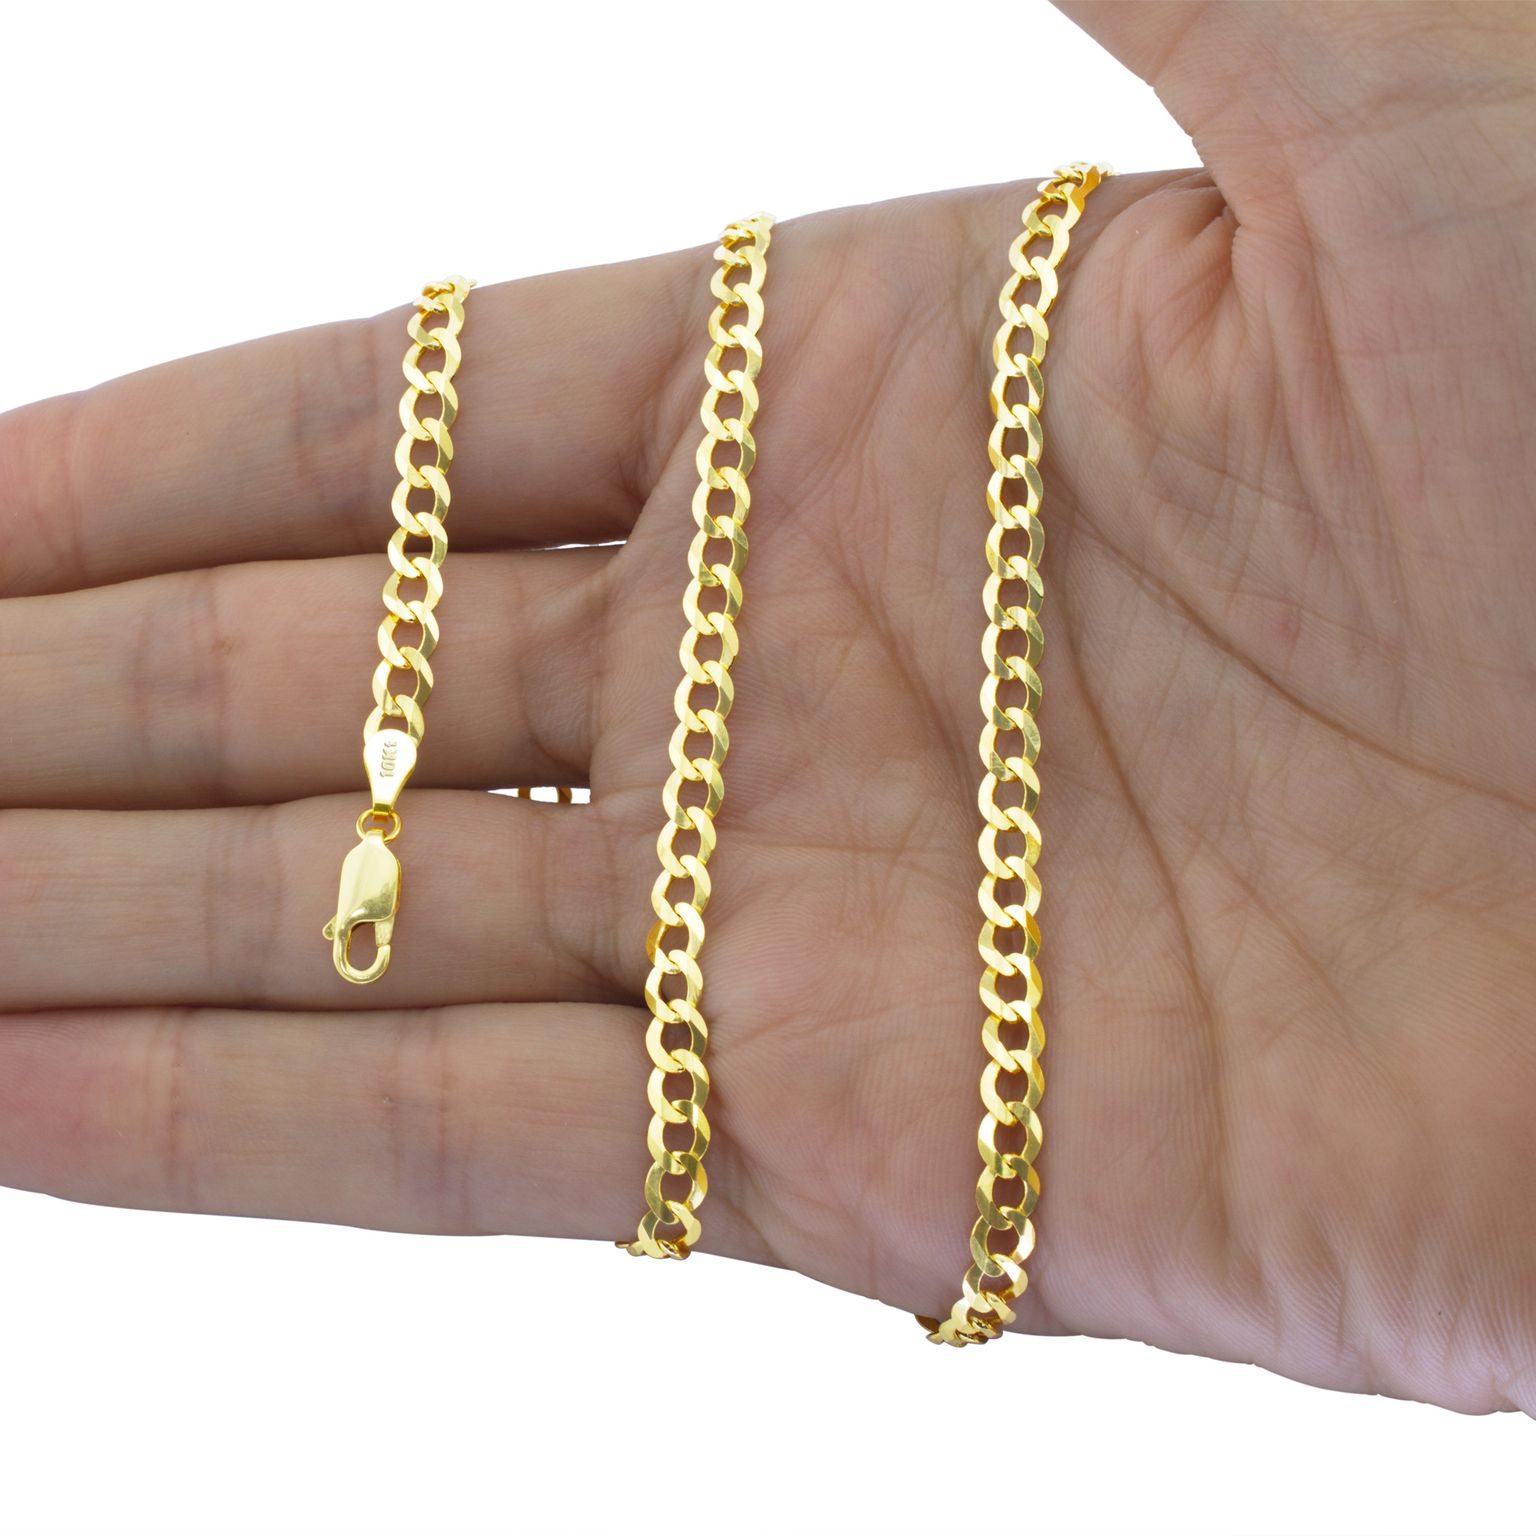 solid 10k yellow gold 5mm curb cuban chain link necklace. Black Bedroom Furniture Sets. Home Design Ideas